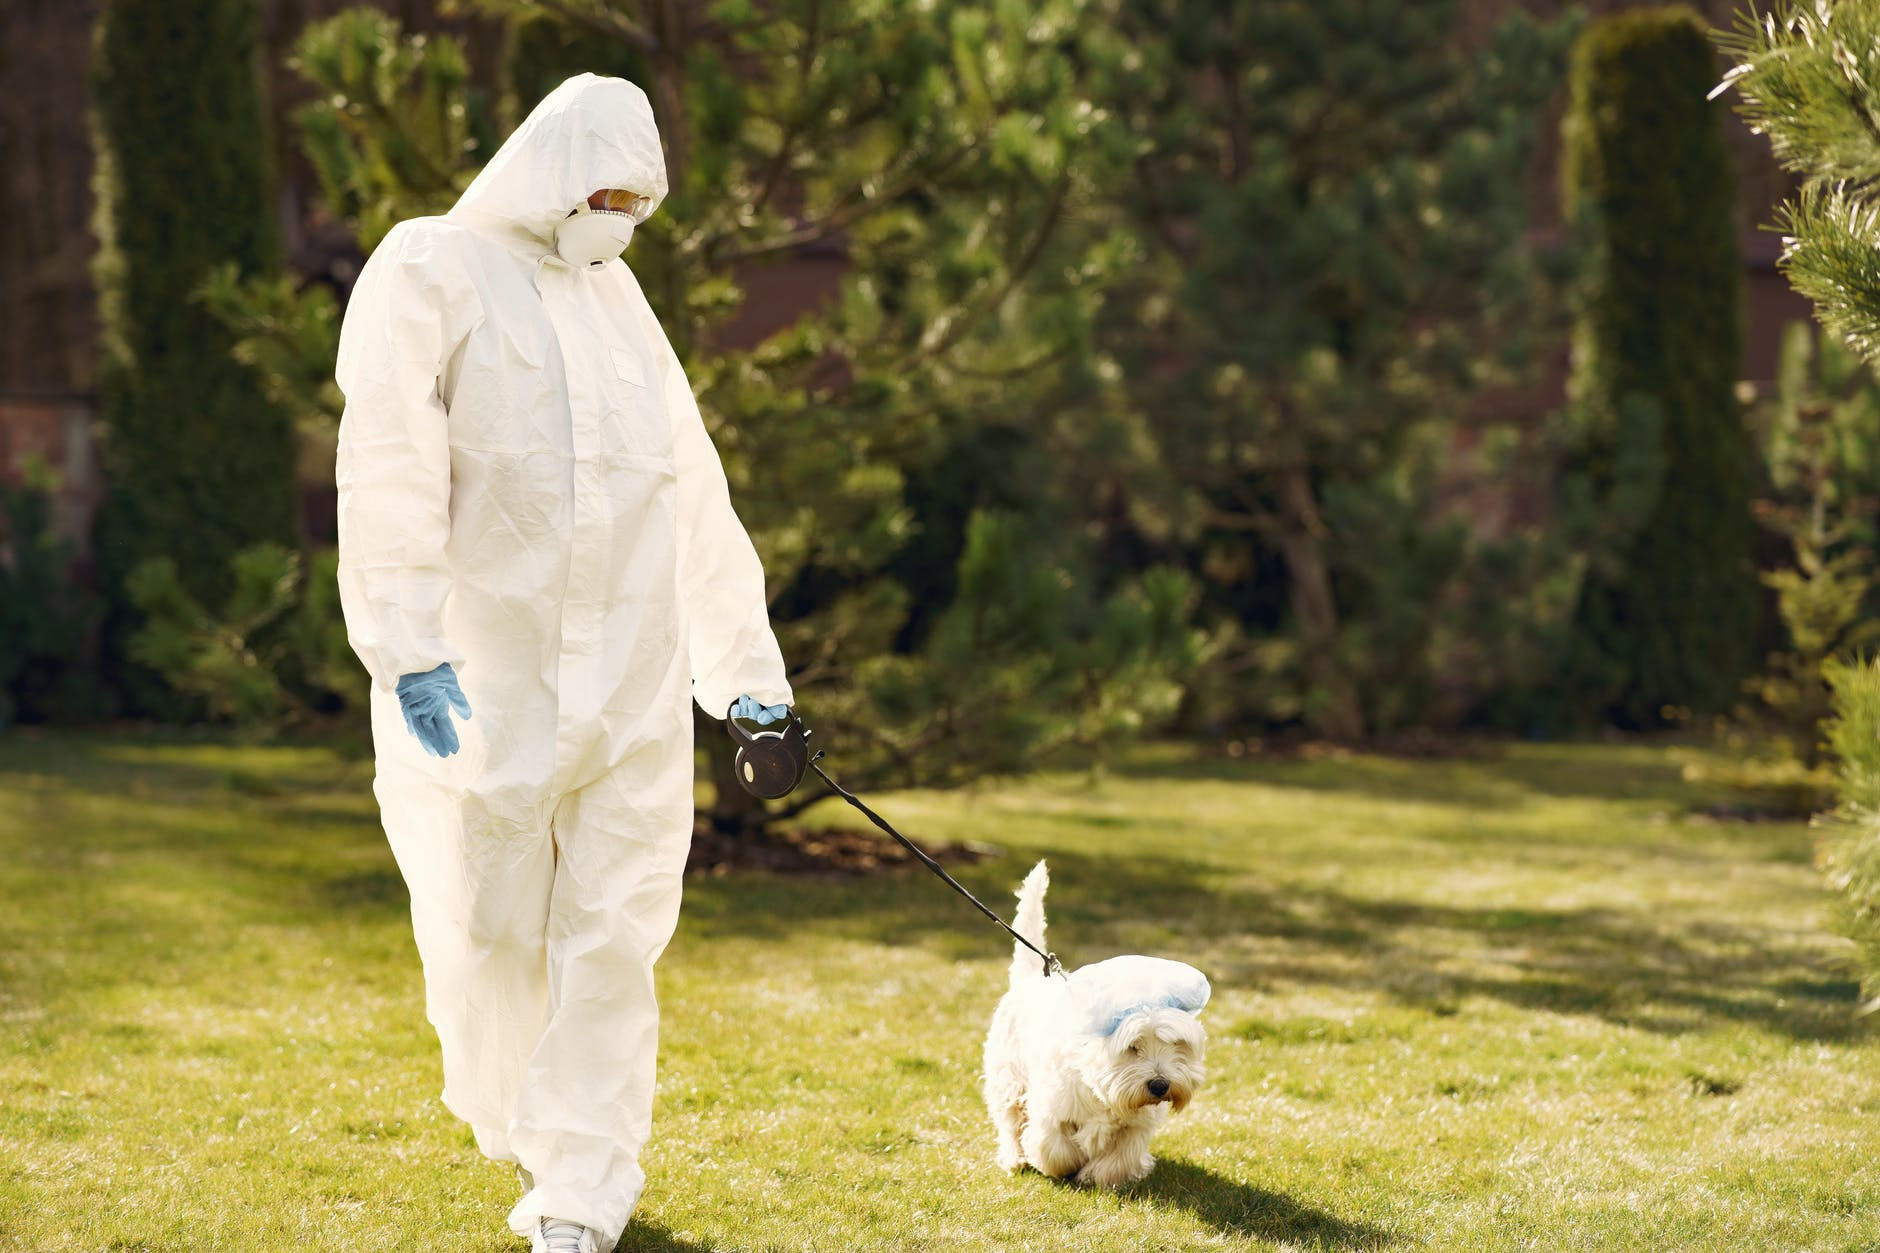 unrecognizable person in protective clothes walking little dog during coronavirus